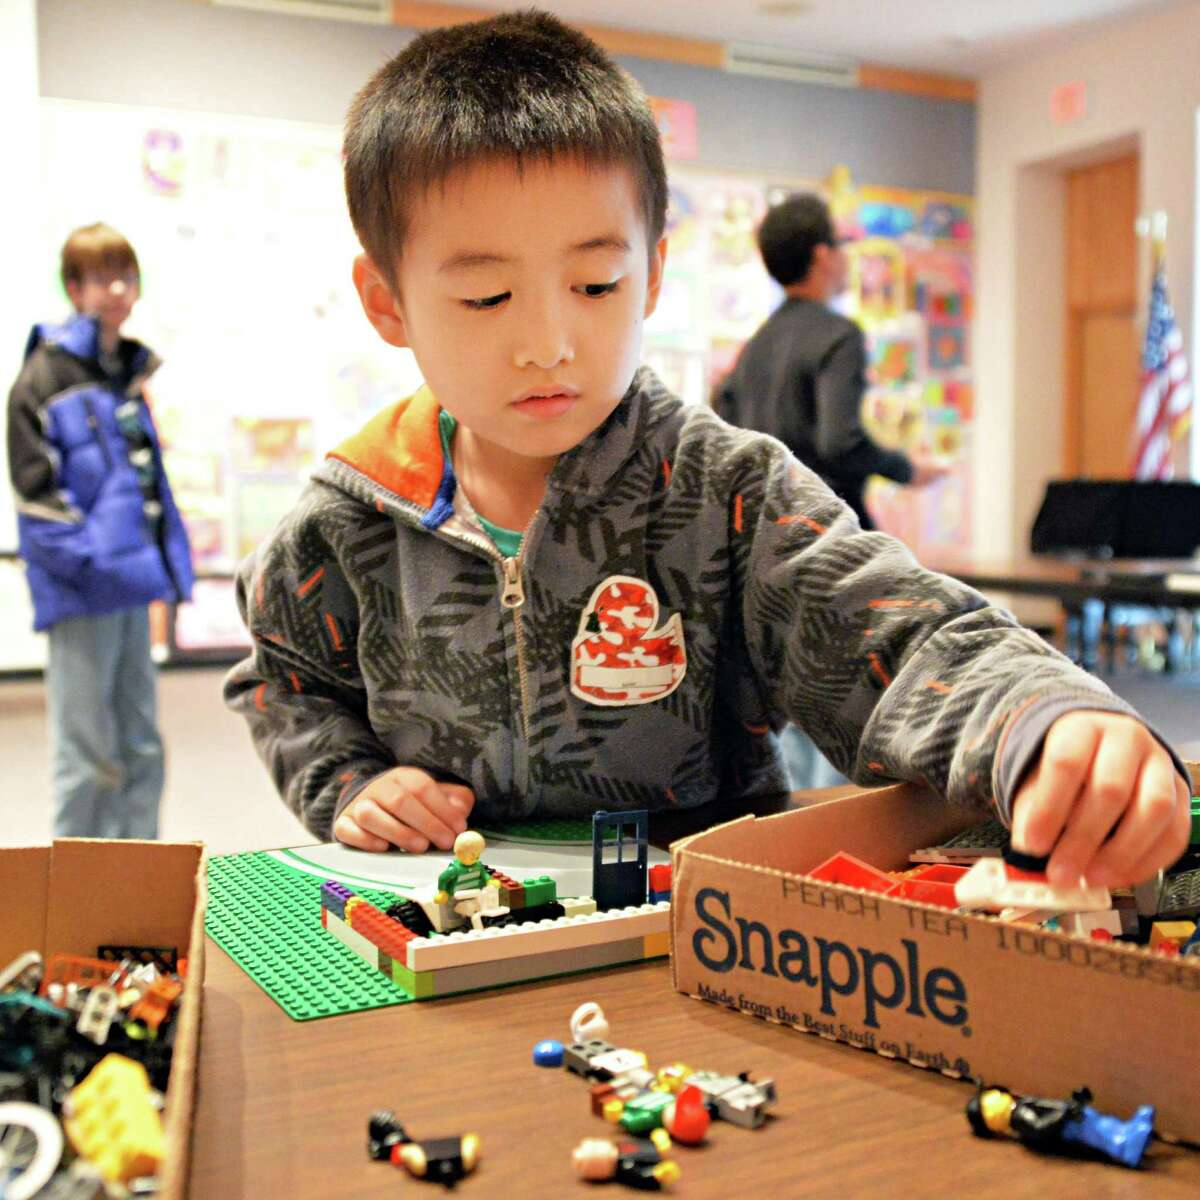 Six-year-old James Gong of Guilderland digs through a box of Lego parts during a Lego building for tweens program at the Guilderland Public Library Friday, April 18, 2014, in Schenectady, N.Y. (John Carl D'Annibale / Times Union)